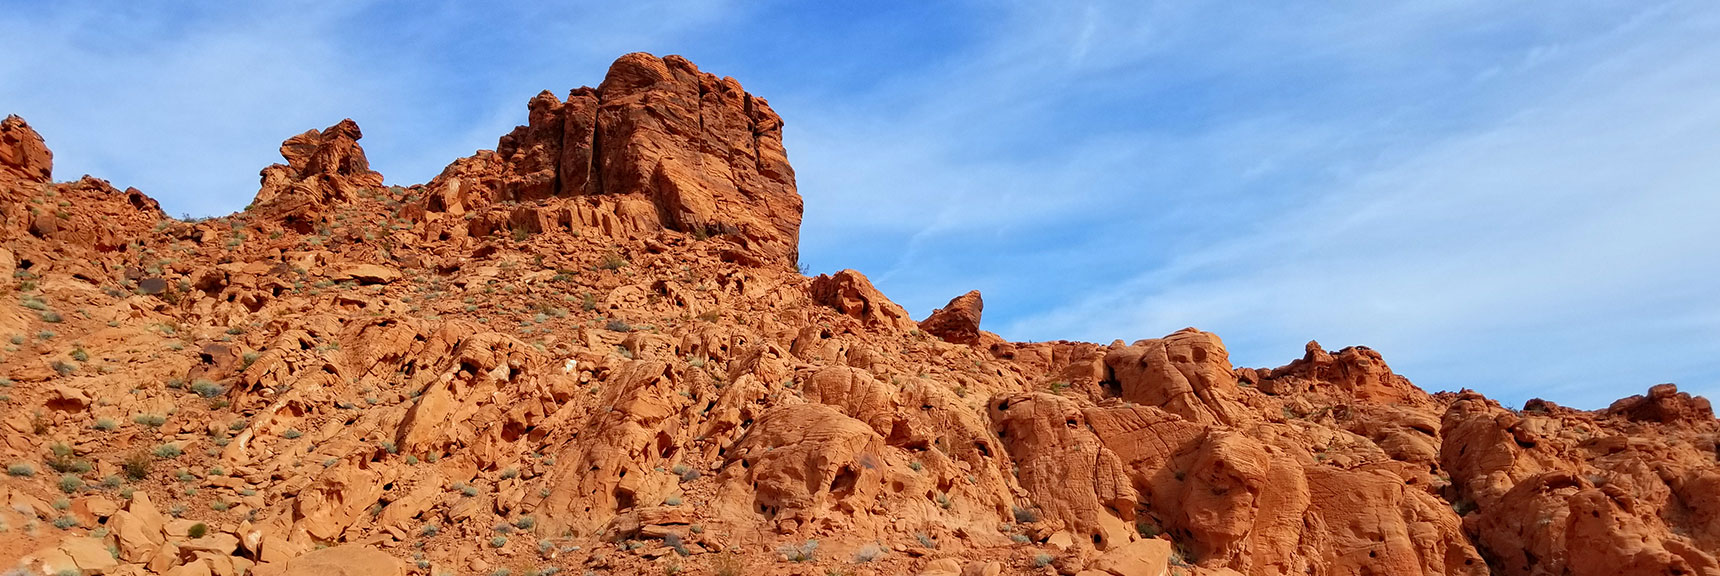 Mountains Behind (North of) Elephant Rock Loop in Valley of Fire State Park, Nevada